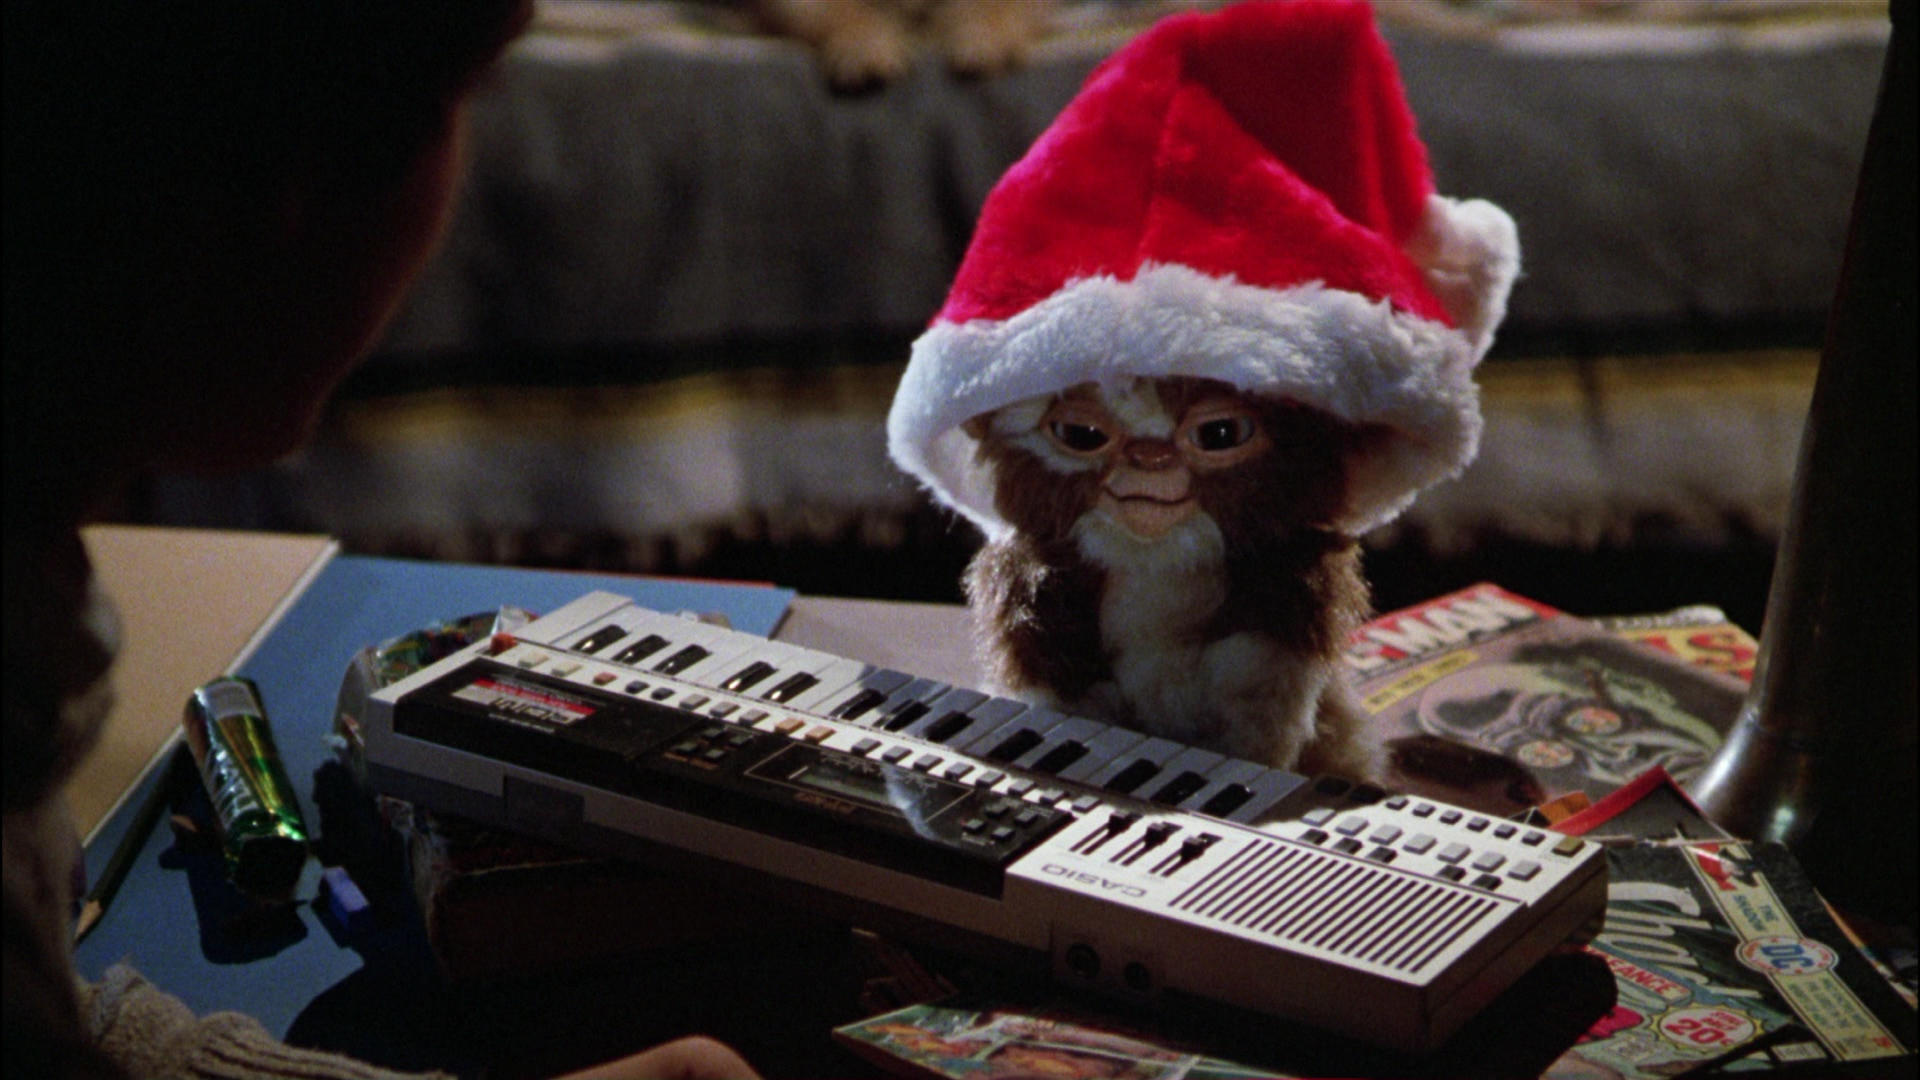 Moonlight Christmas: Gremlins & Black Christmas